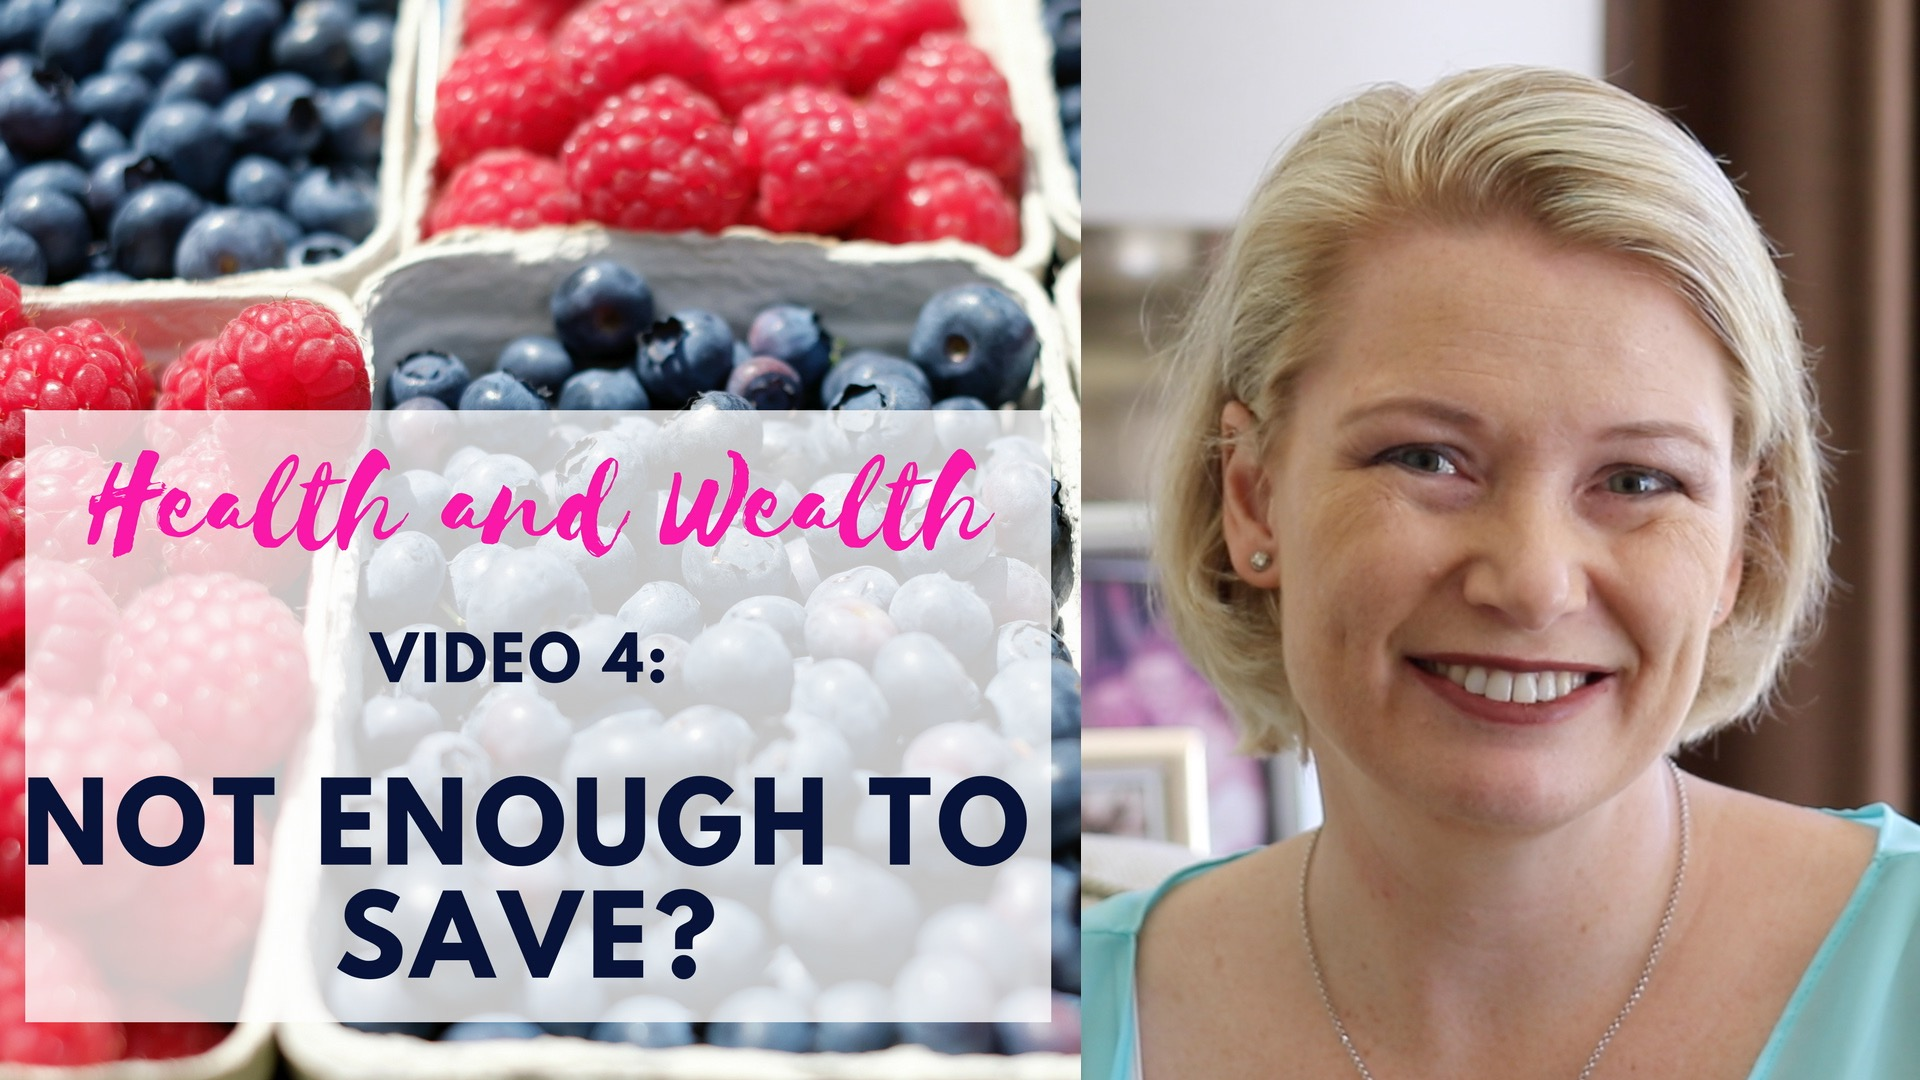 Video 5 – Saving when there's not enough to save